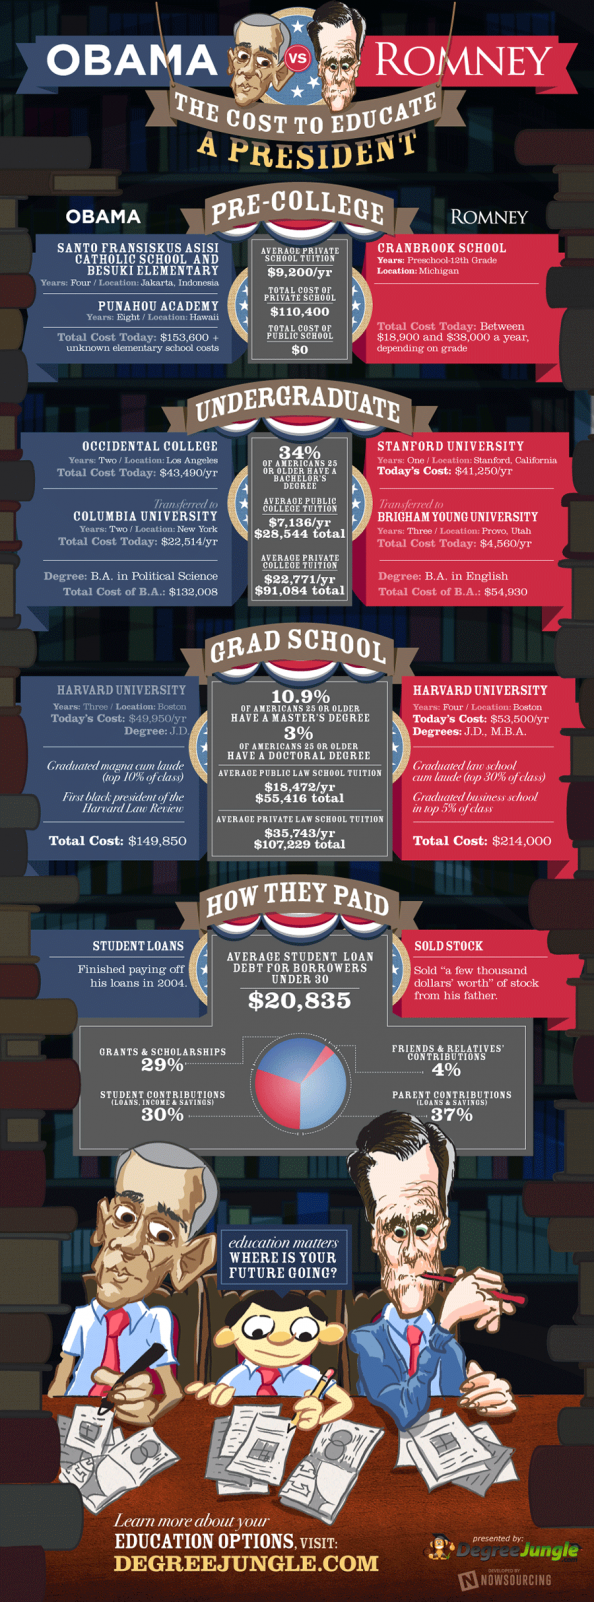 The Cost to Educate a President Infographic